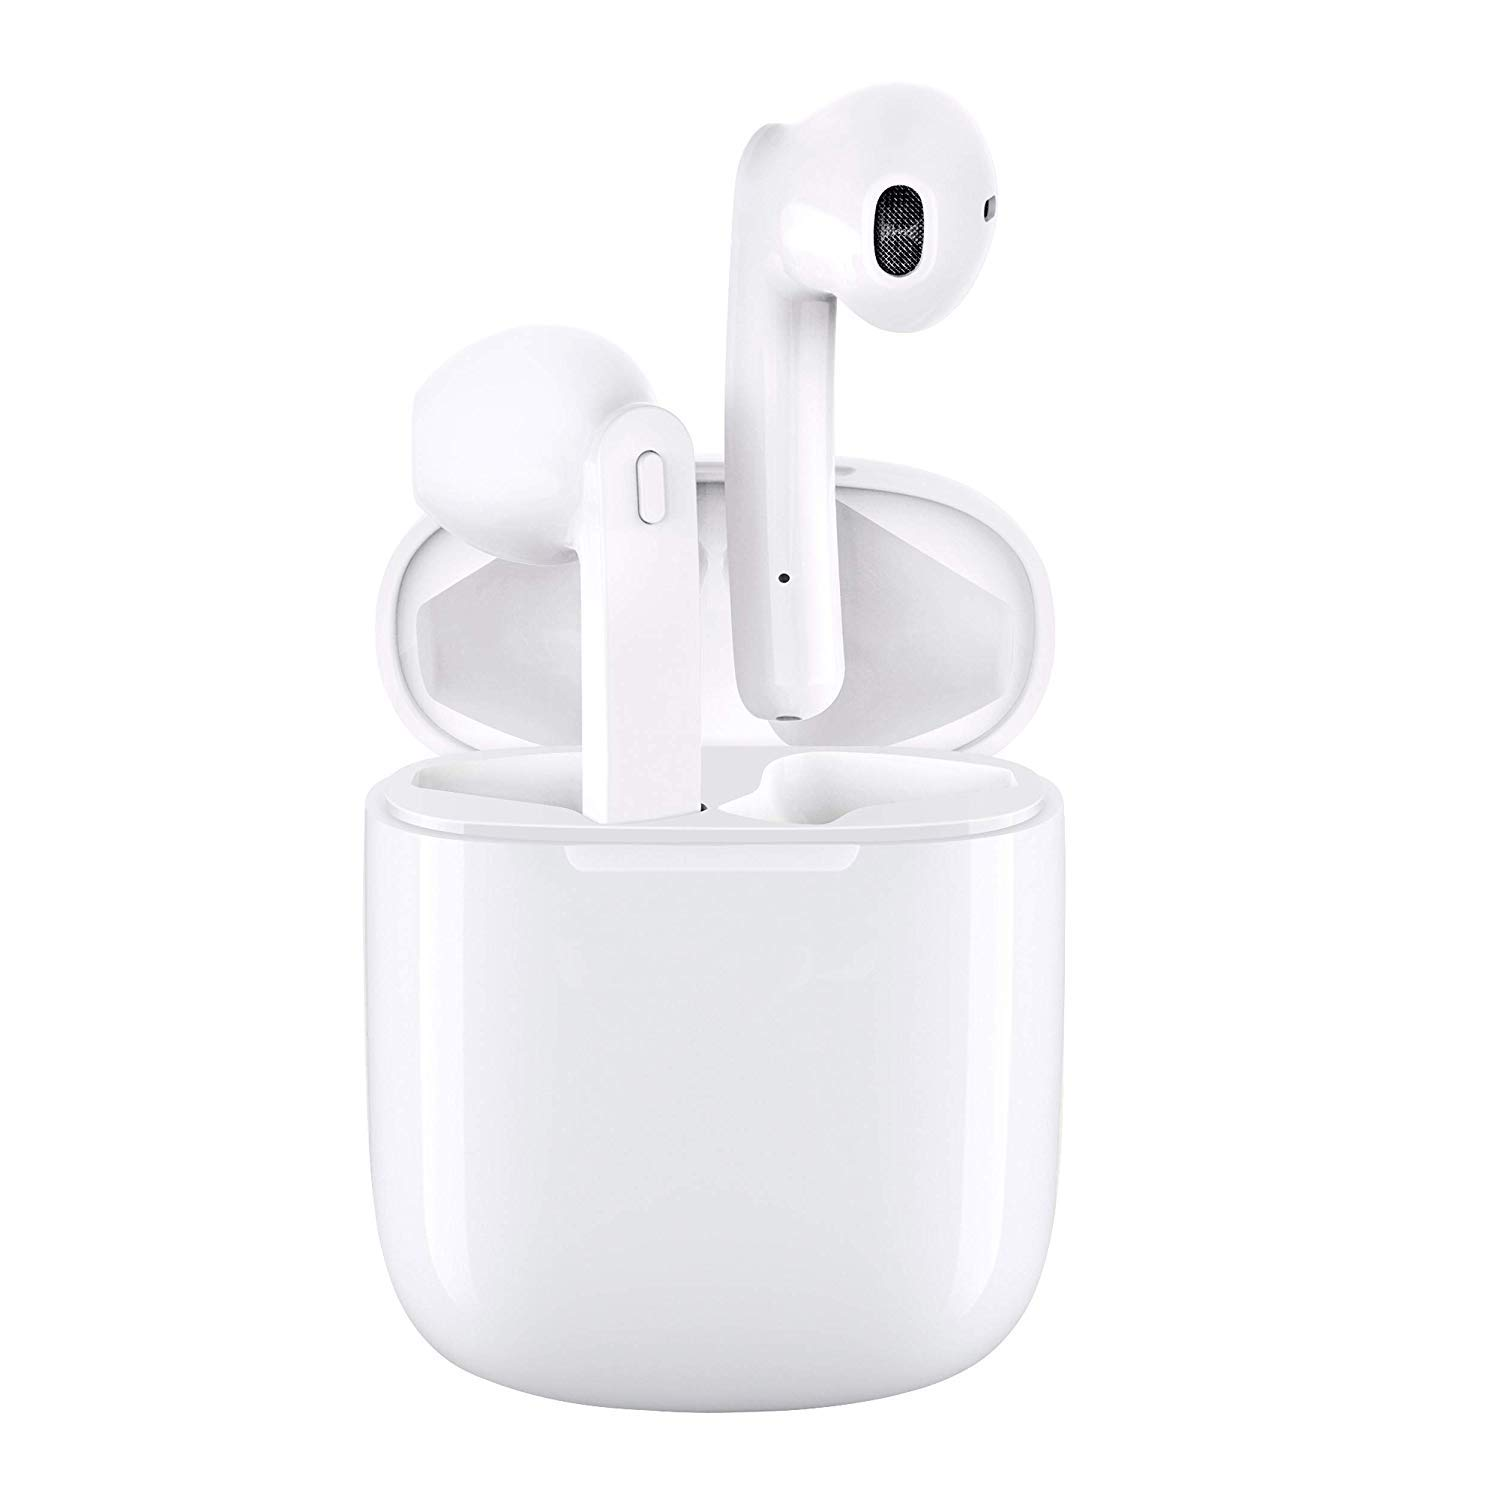 Wireless Earbuds Bluetooth Headphones 5.0 Stereo Hi-Fi Sound with Deep Bass Wireless Earphones Built-in Mic Headset, 4.5 Hours Playtime, in-Ear Bluetooth Earphones with Charging Case